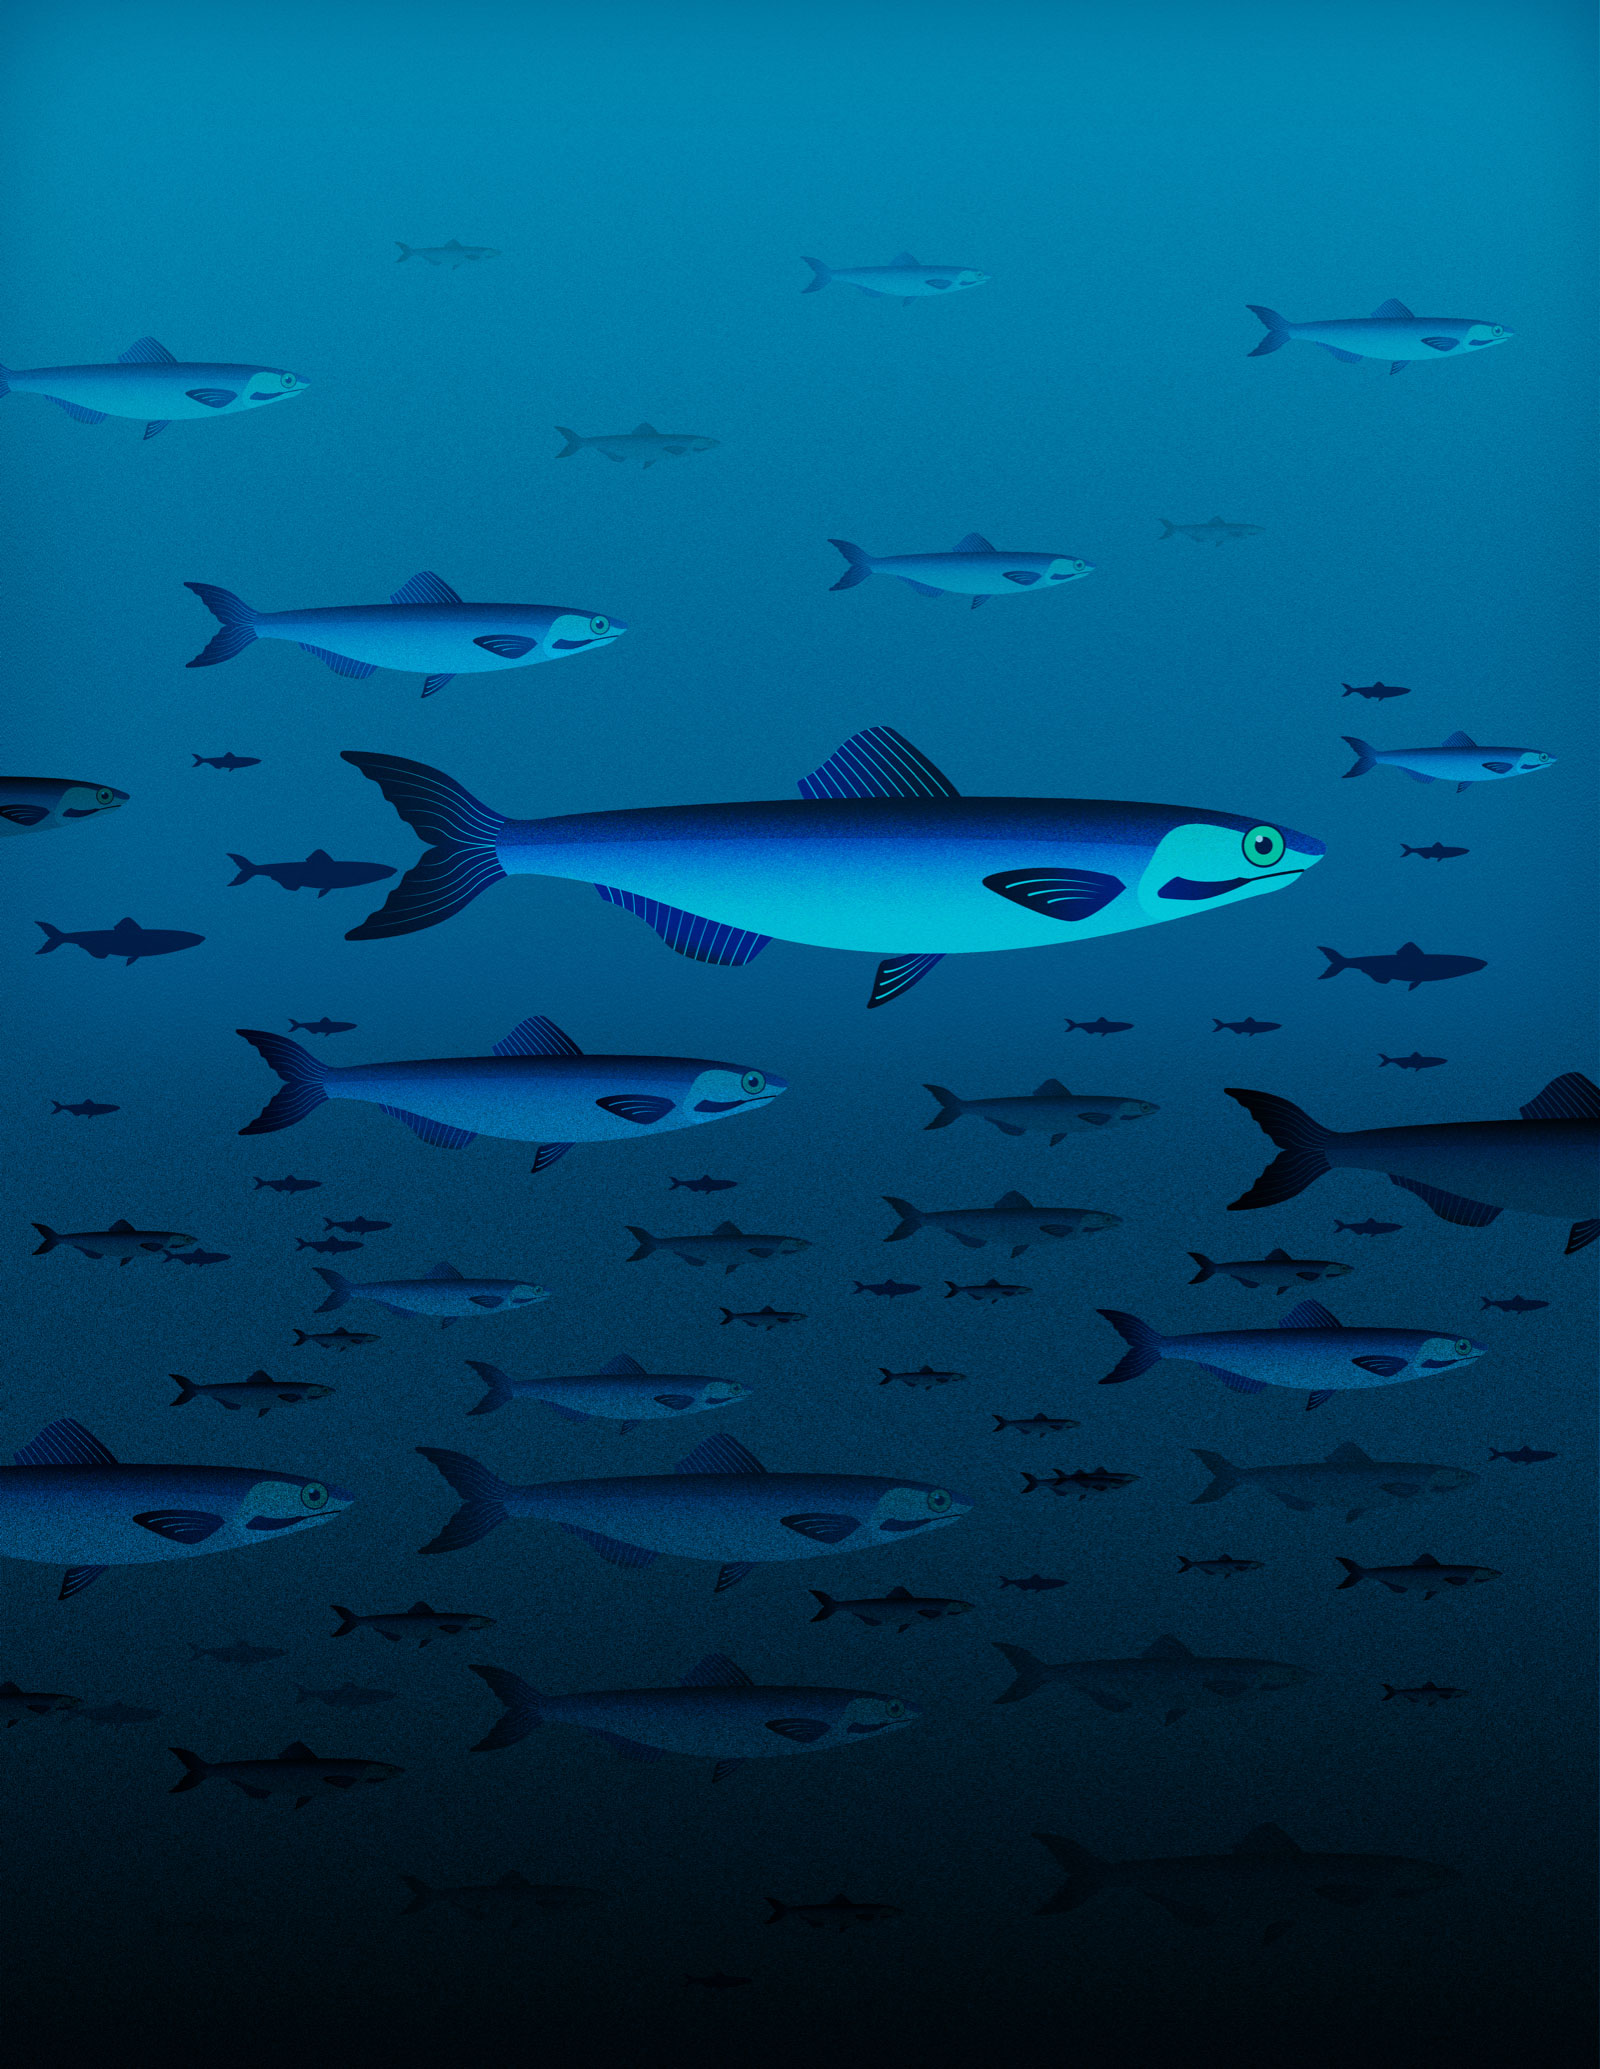 Graphic design illustration of mackerel fish in a sea getting more populous at the bottom.